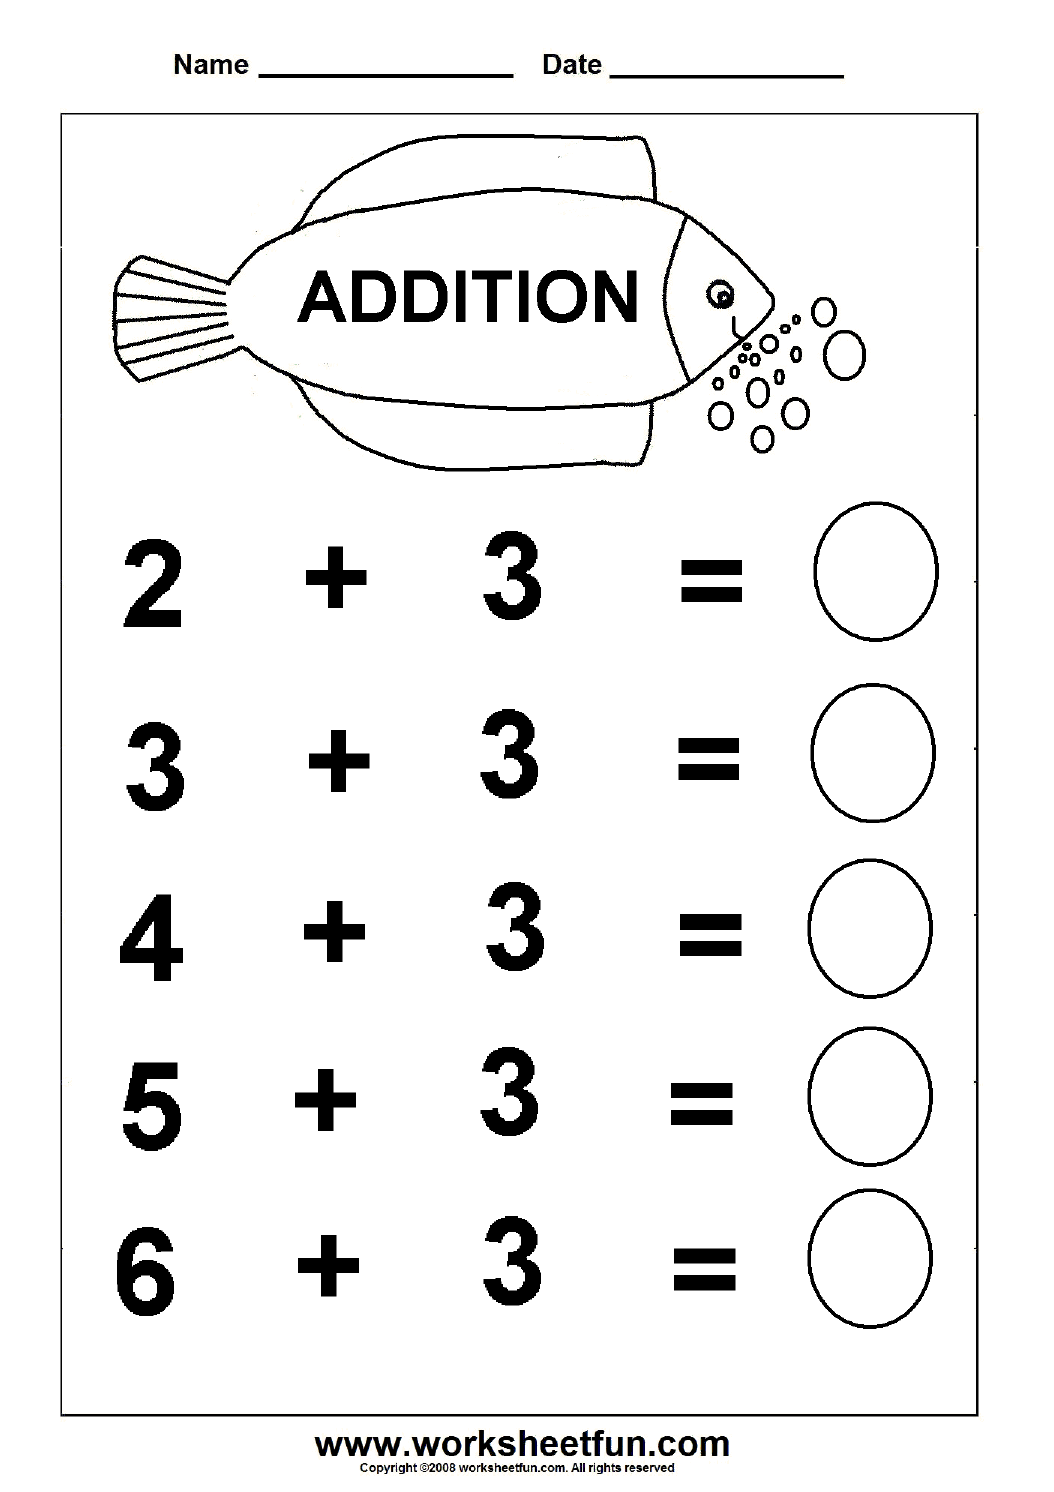 worksheet. Free Math Worksheets For Kids. Grass Fedjp Worksheet ...